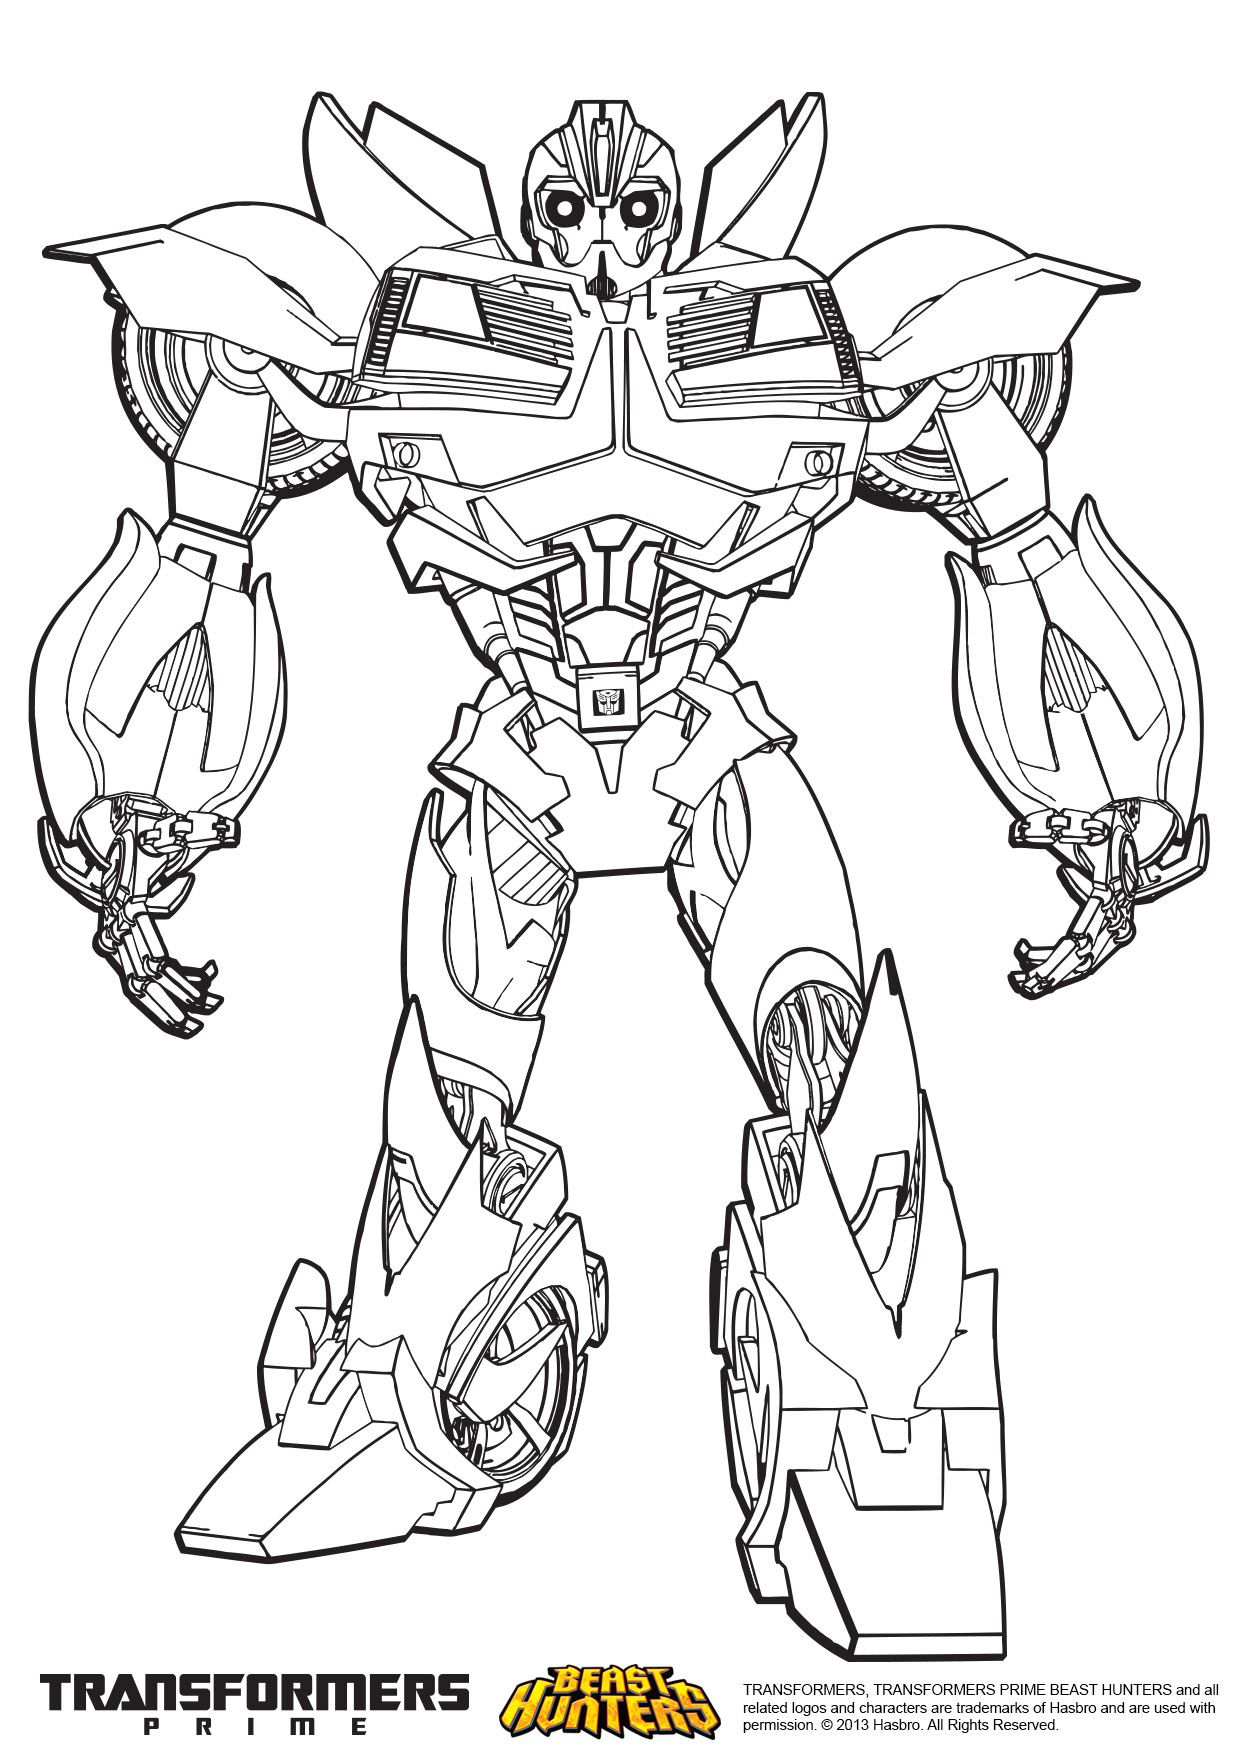 Ausmalbilder Zum Geburtstag Erwachsene : Transformers Prime Beast Hunters Coloring Pages Google Search